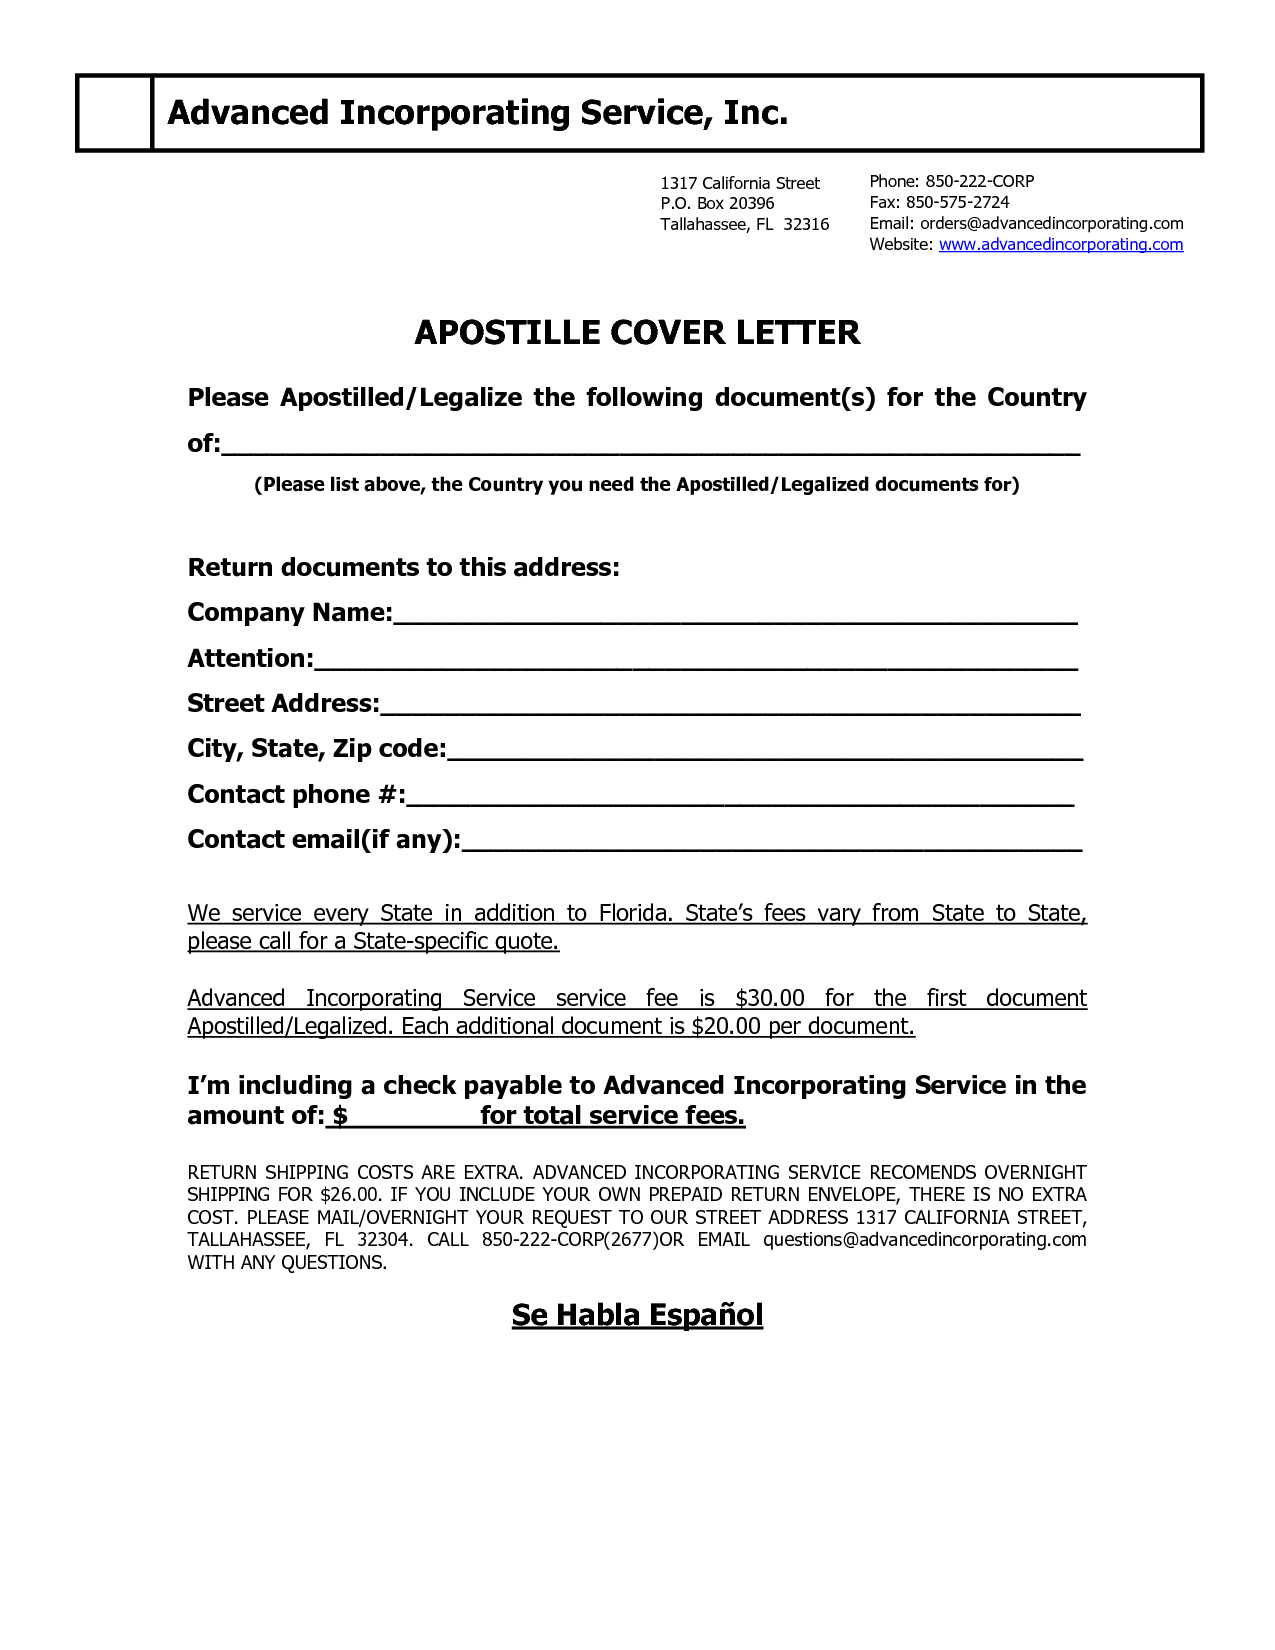 probation officer cover letters - Probation Officer Cover Letter